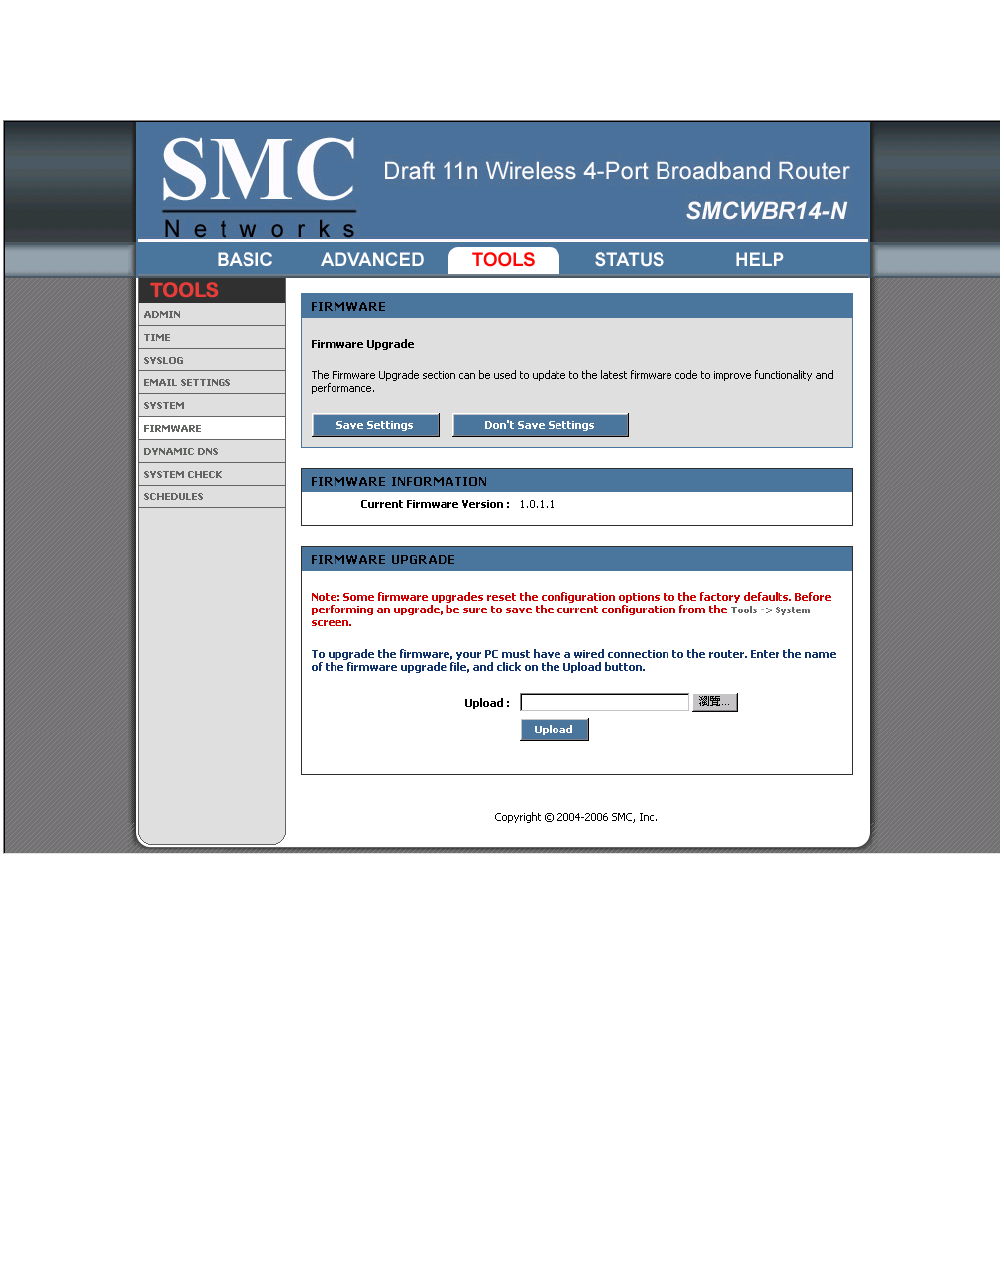 Routersetup smc:: smcwbr14-n2.